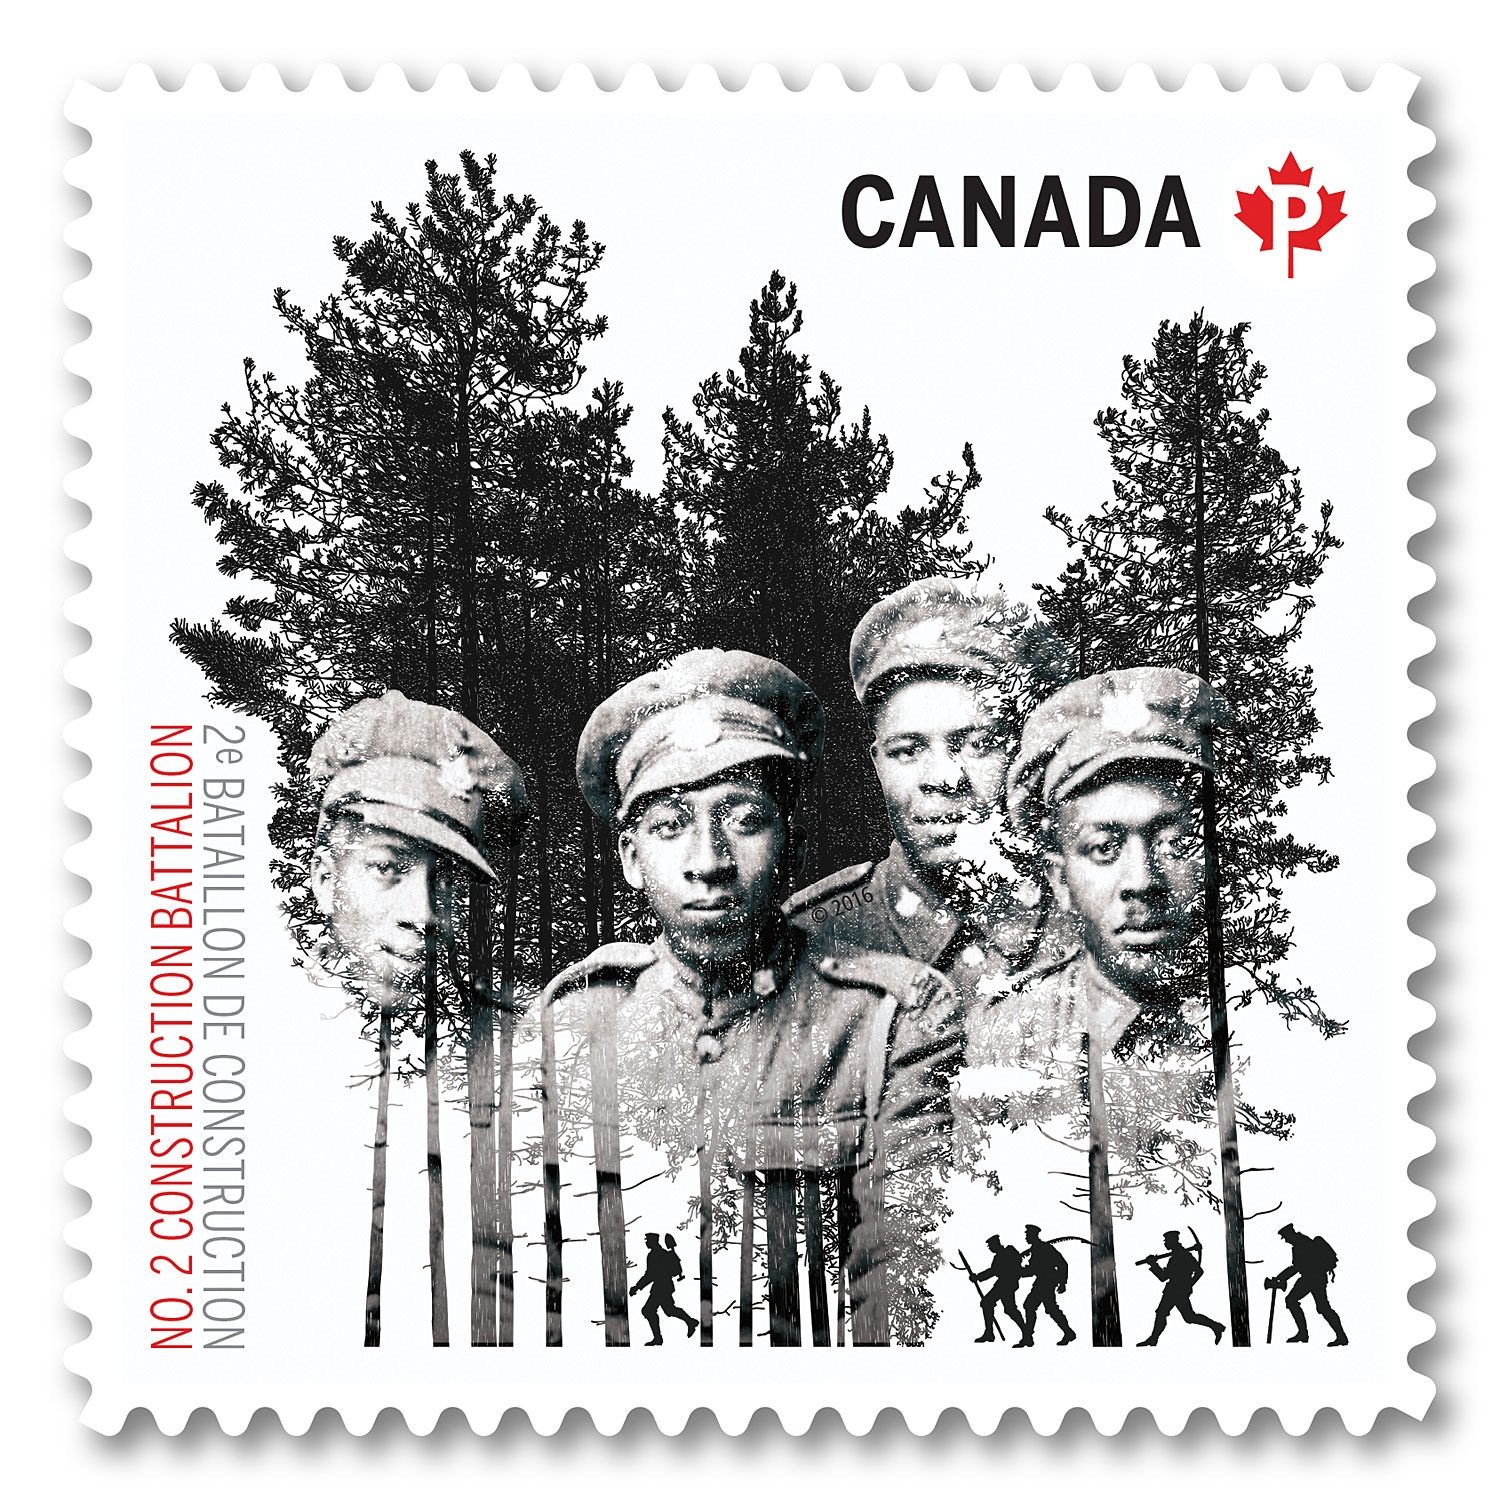 Stamp Honours Black Canadian Unit in First World War | The Afro News